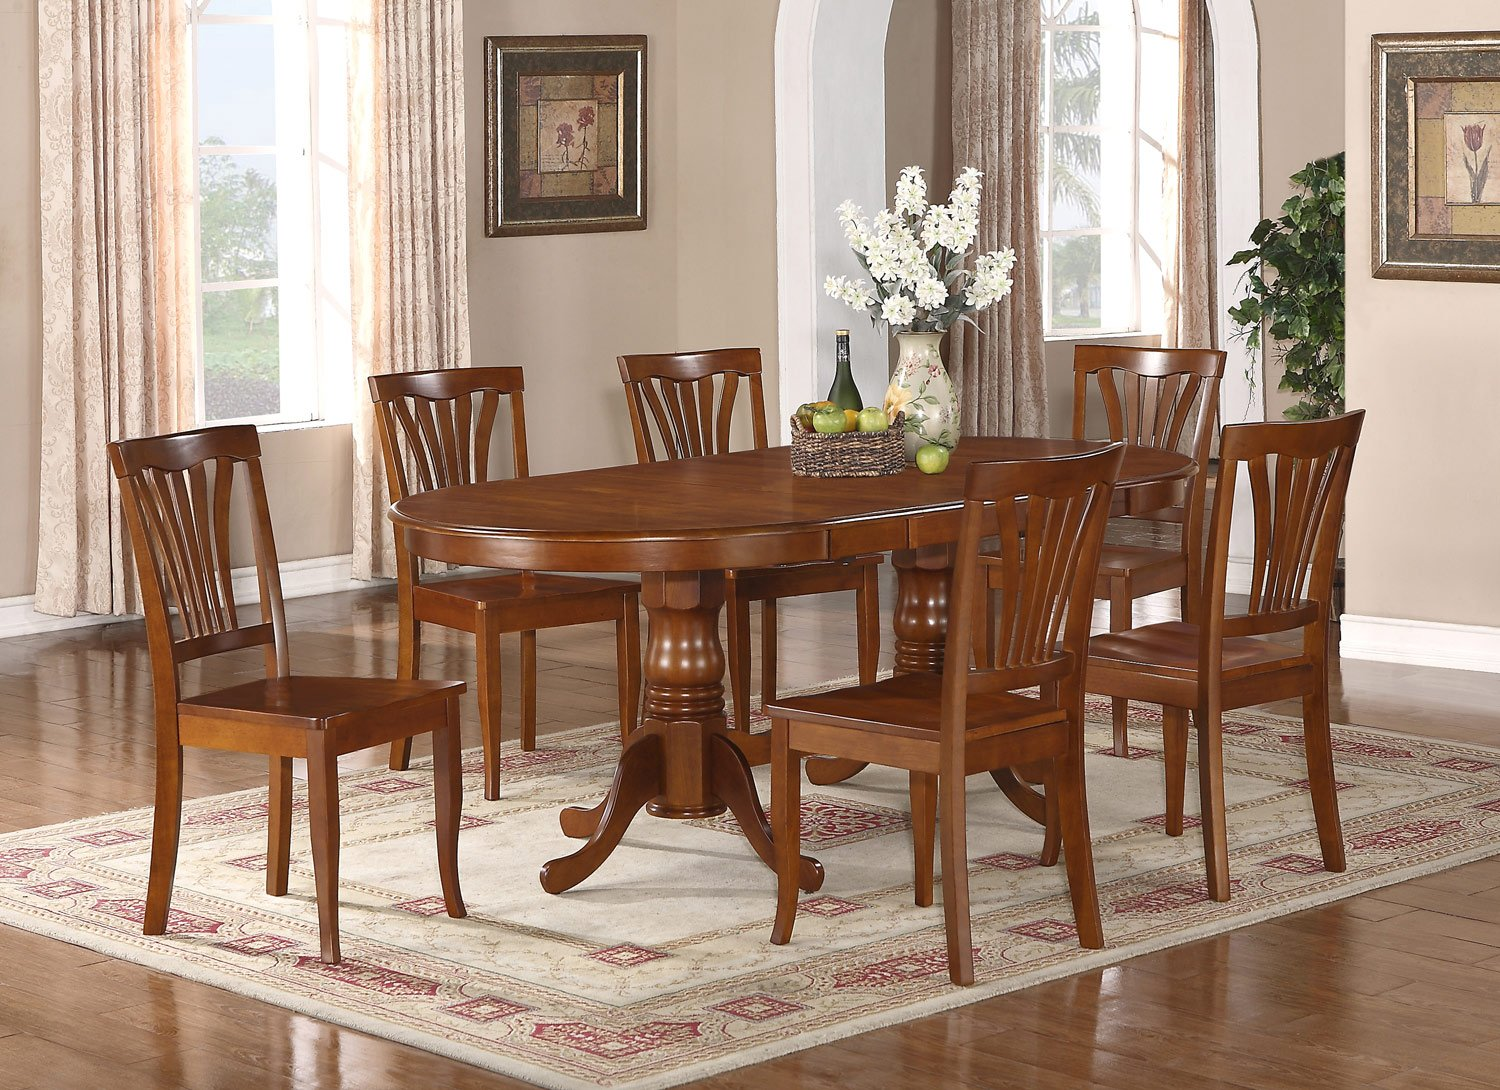 7 pc newton oval dining room table set 6 chairs size for 7 pc dining room set